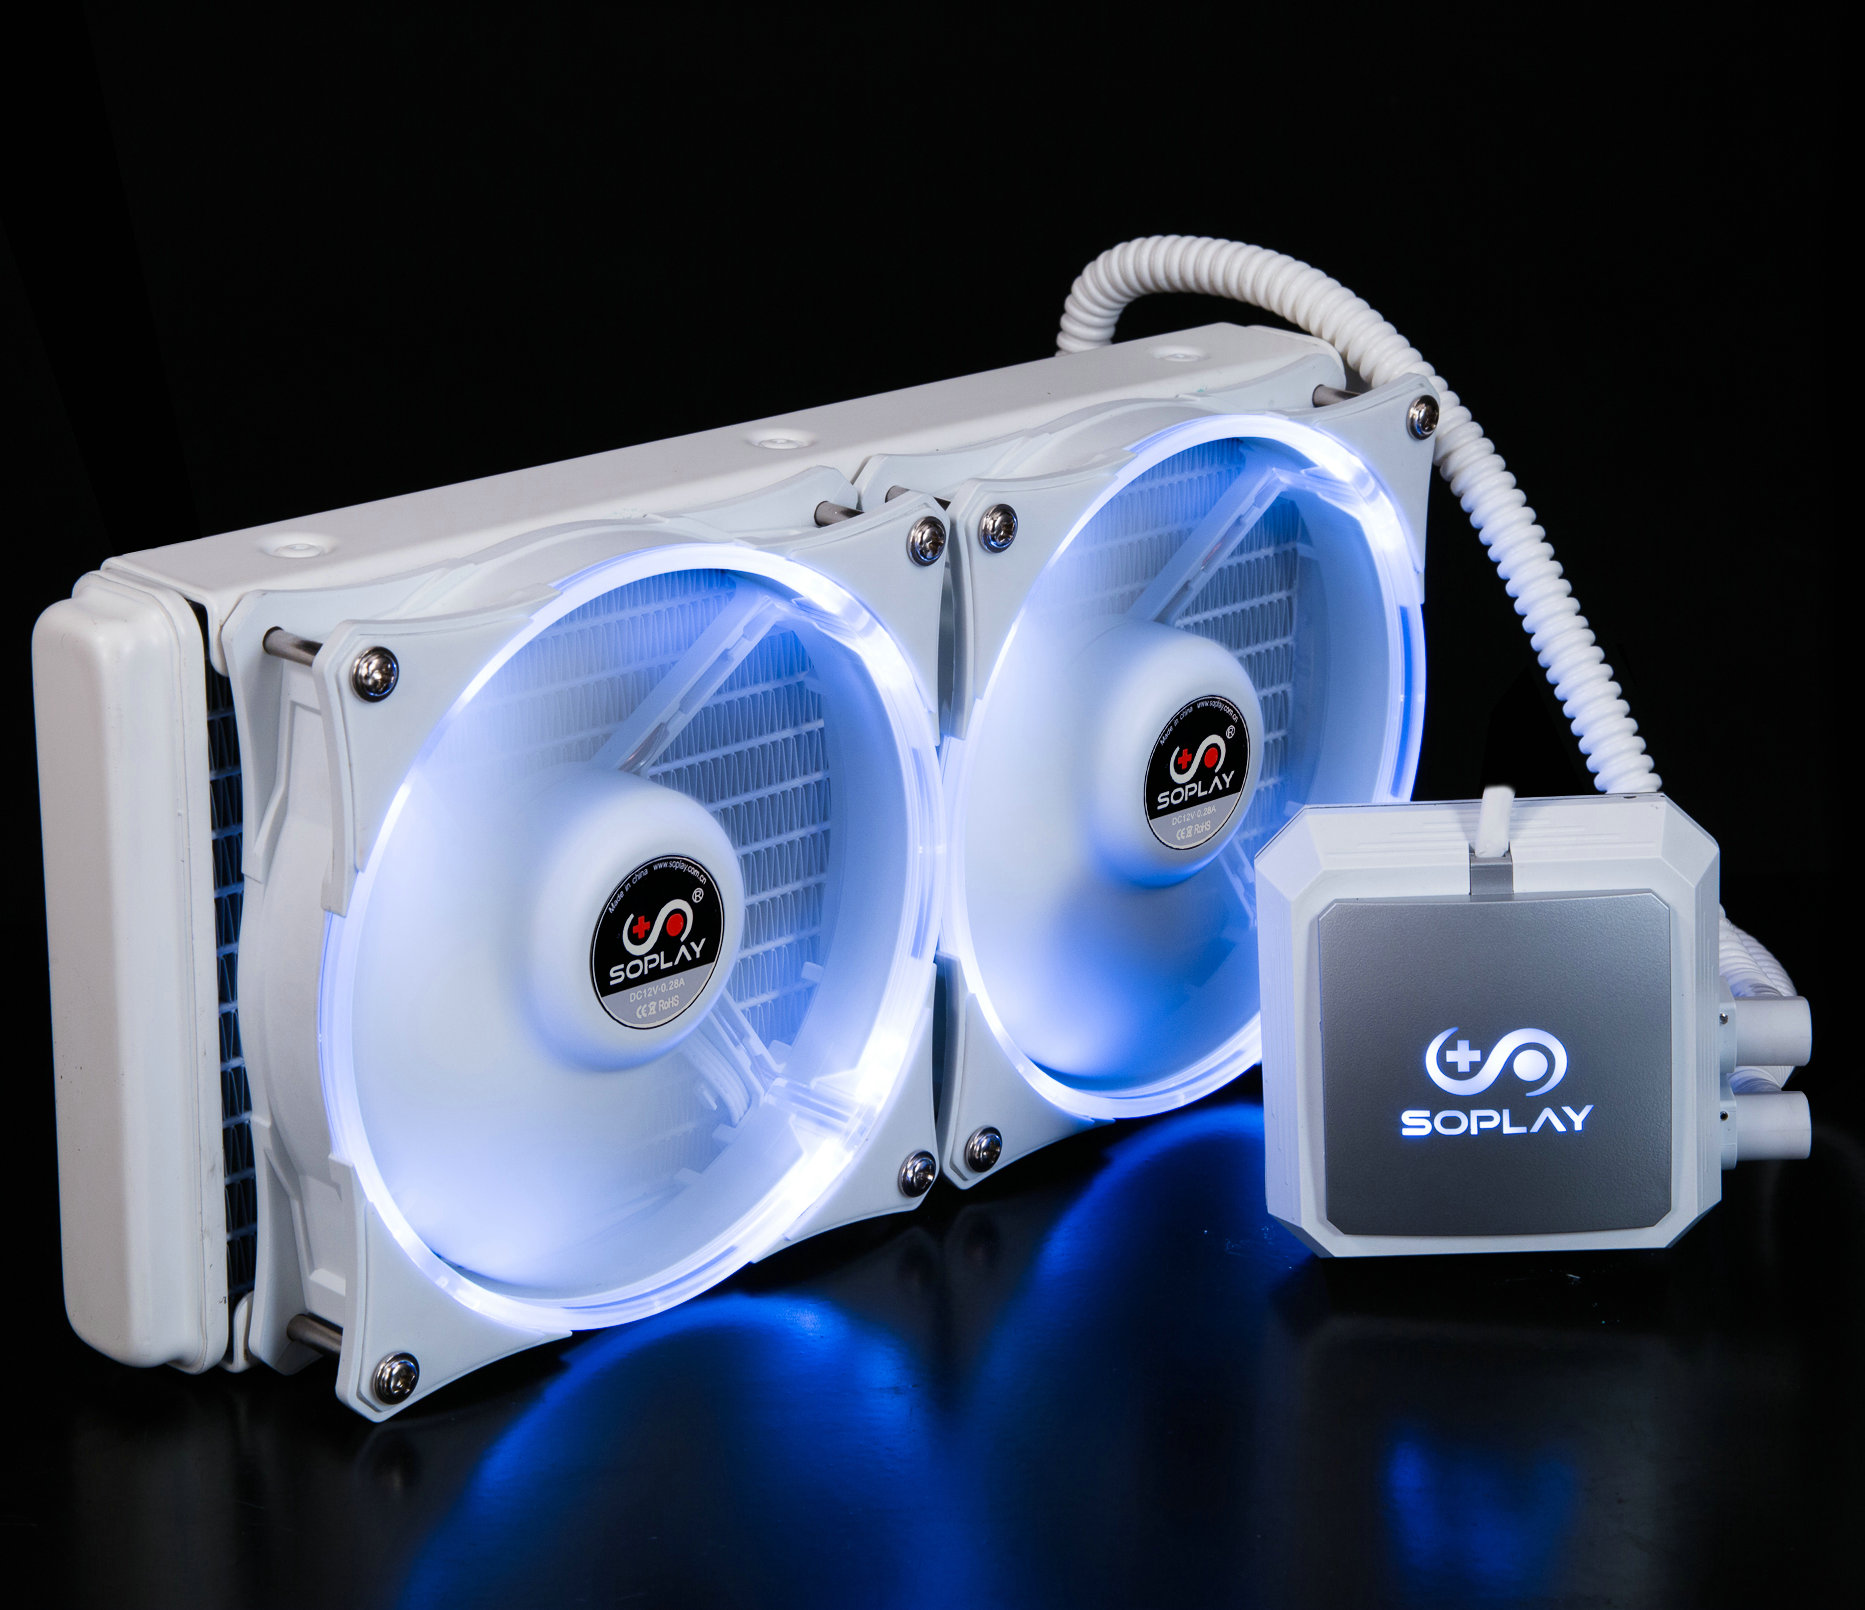 SP-C2407 upgraded version of 240mm water-cooled radiator to send AM4 RYZEN buckle